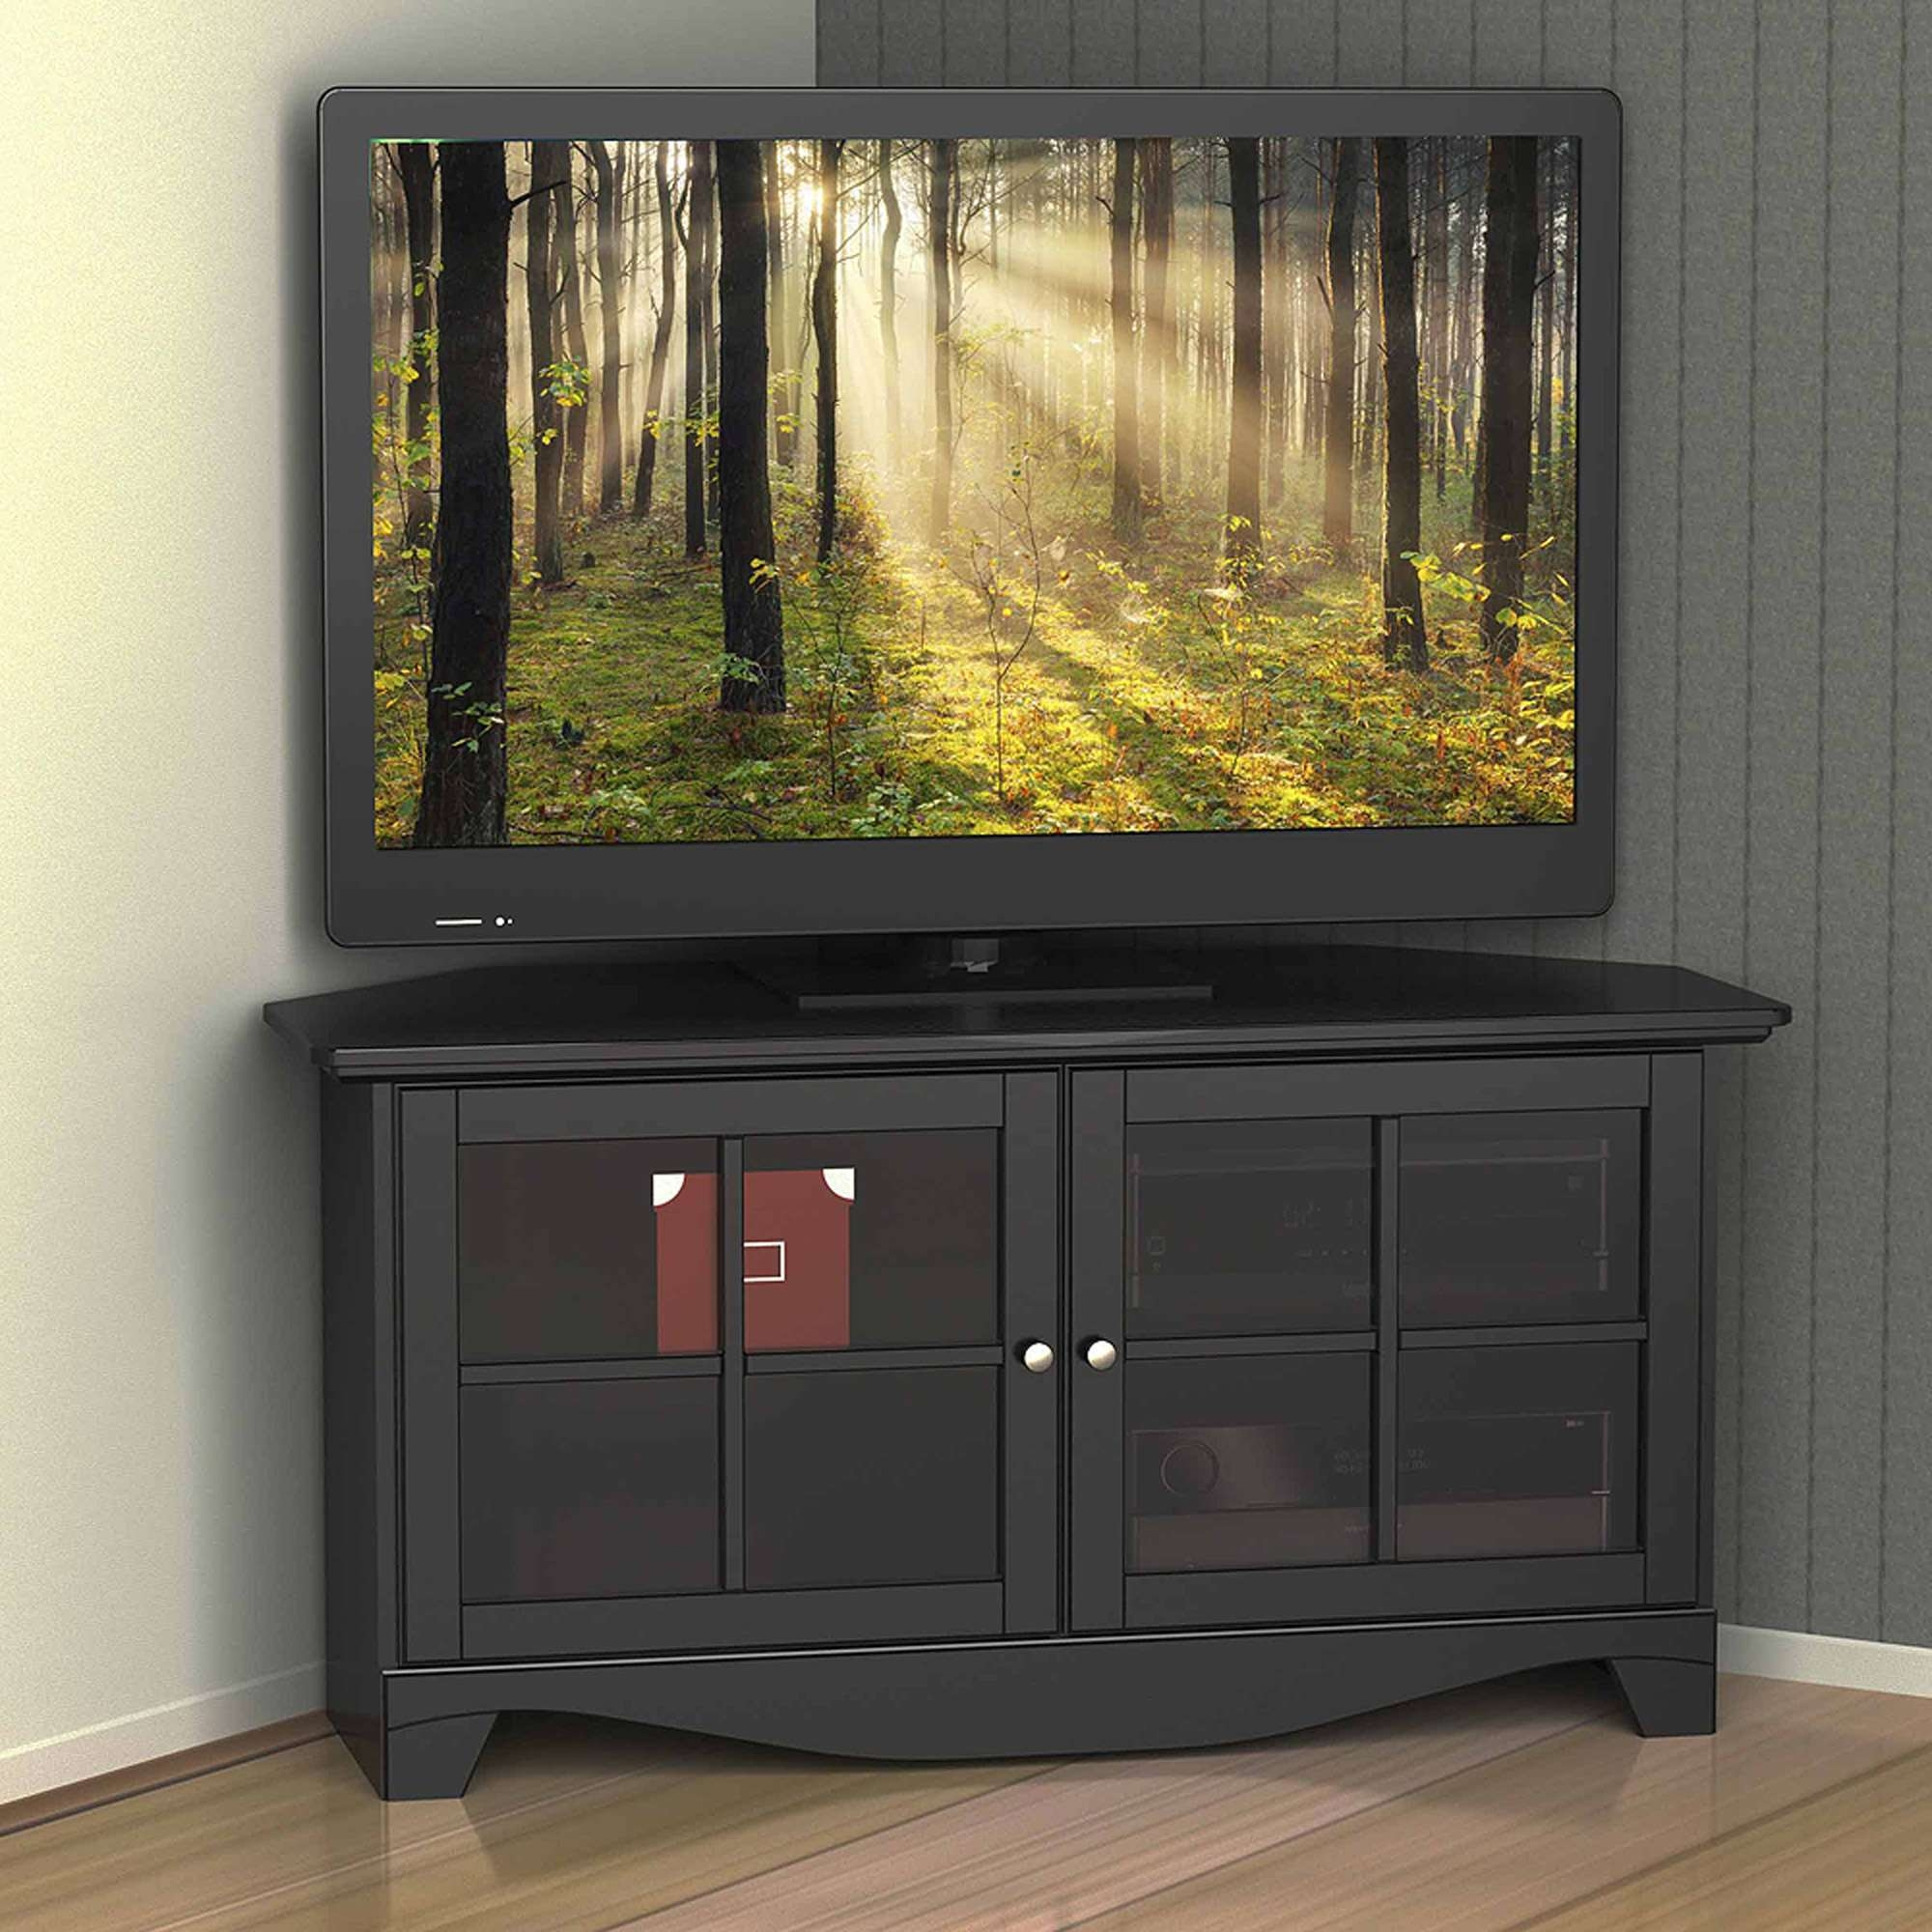 Nexera Pinnacle Black 2 Door Corner Tv Stand For Tvs Up To 49 With Regard To Black Corner Tv Cabinets (View 14 of 20)